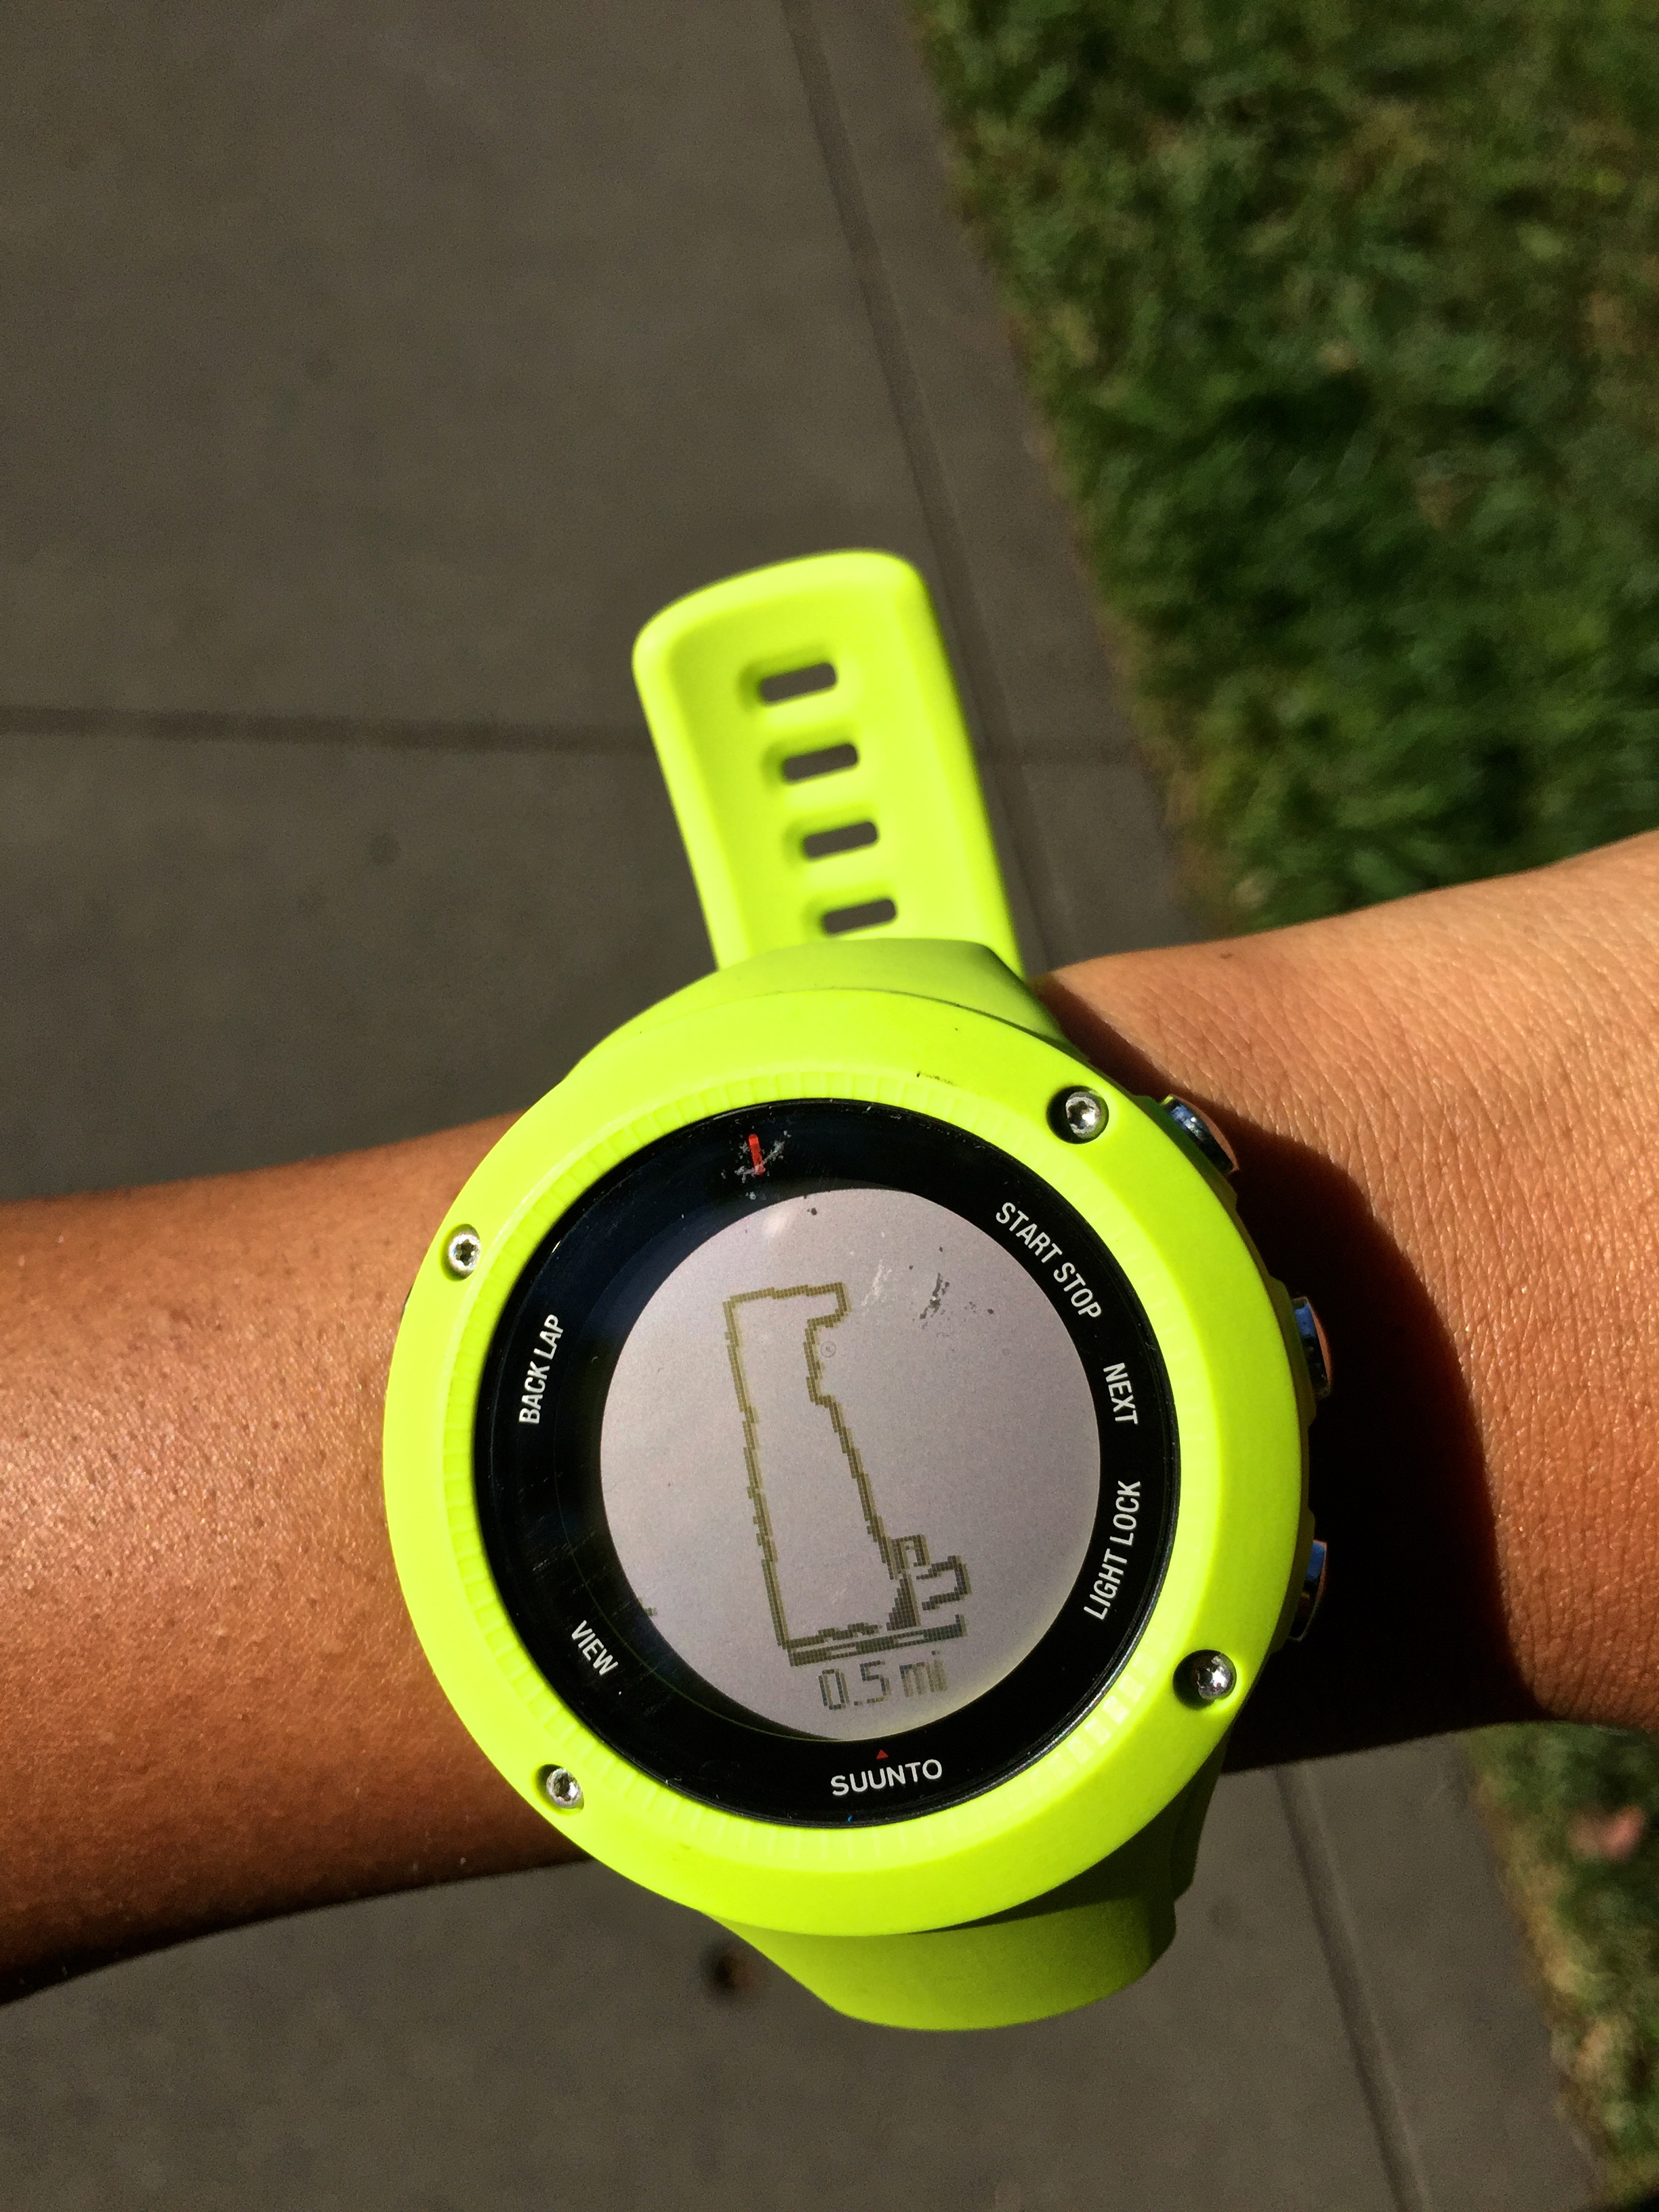 Watch with wrist hrm - Downloaded Route Navigation